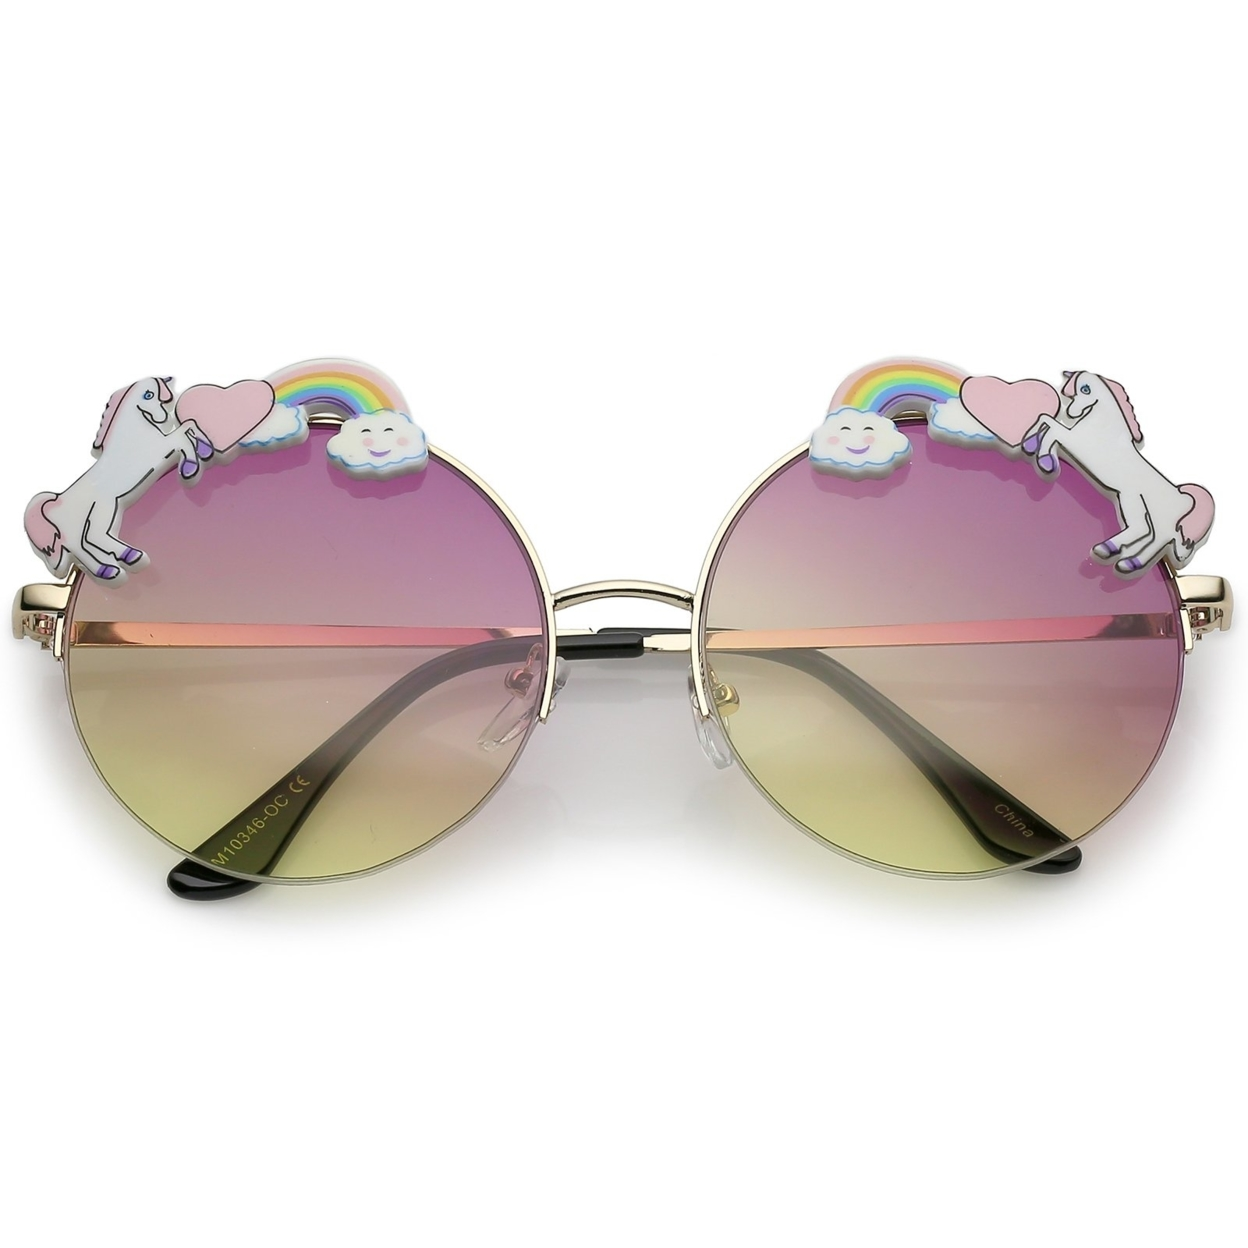 Unicorn Rainbow Semi Rimless Round Sunglasses With Gradient Colored Lens 56mm